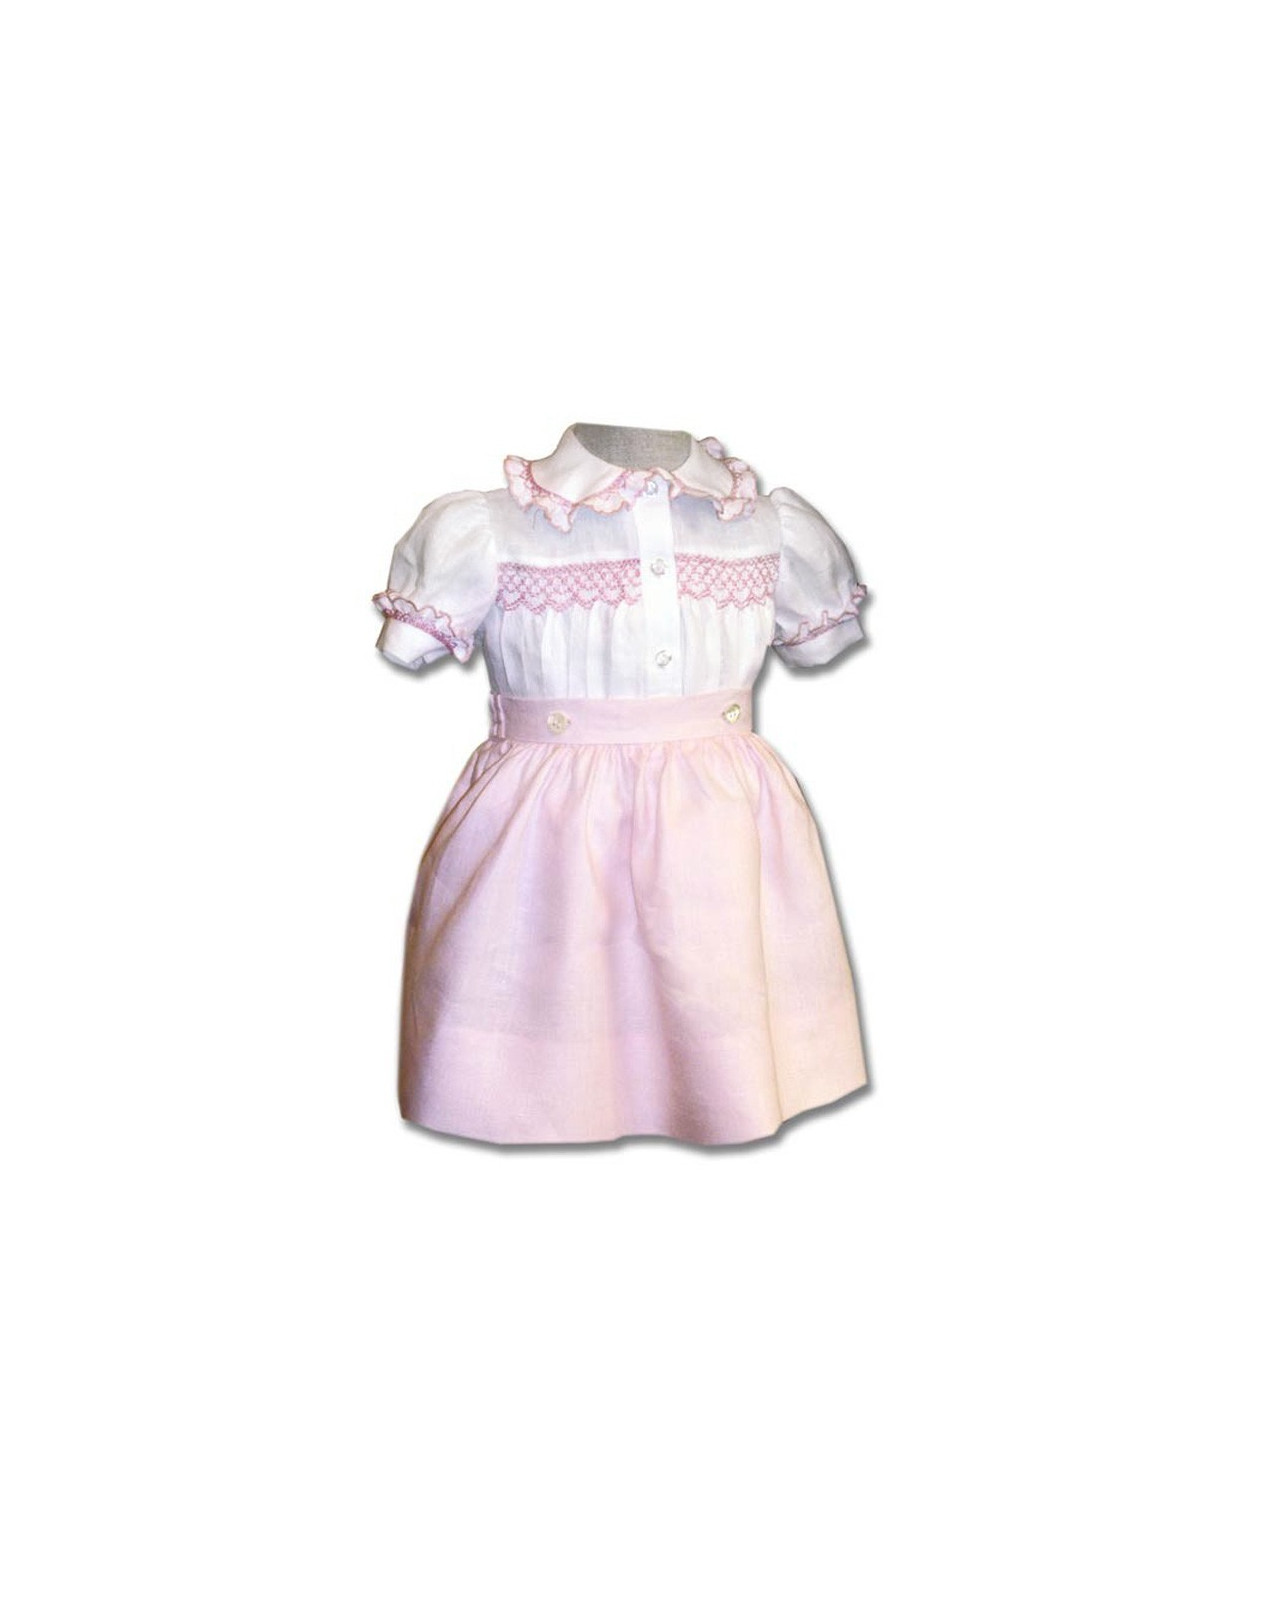 Isotta girl outfit